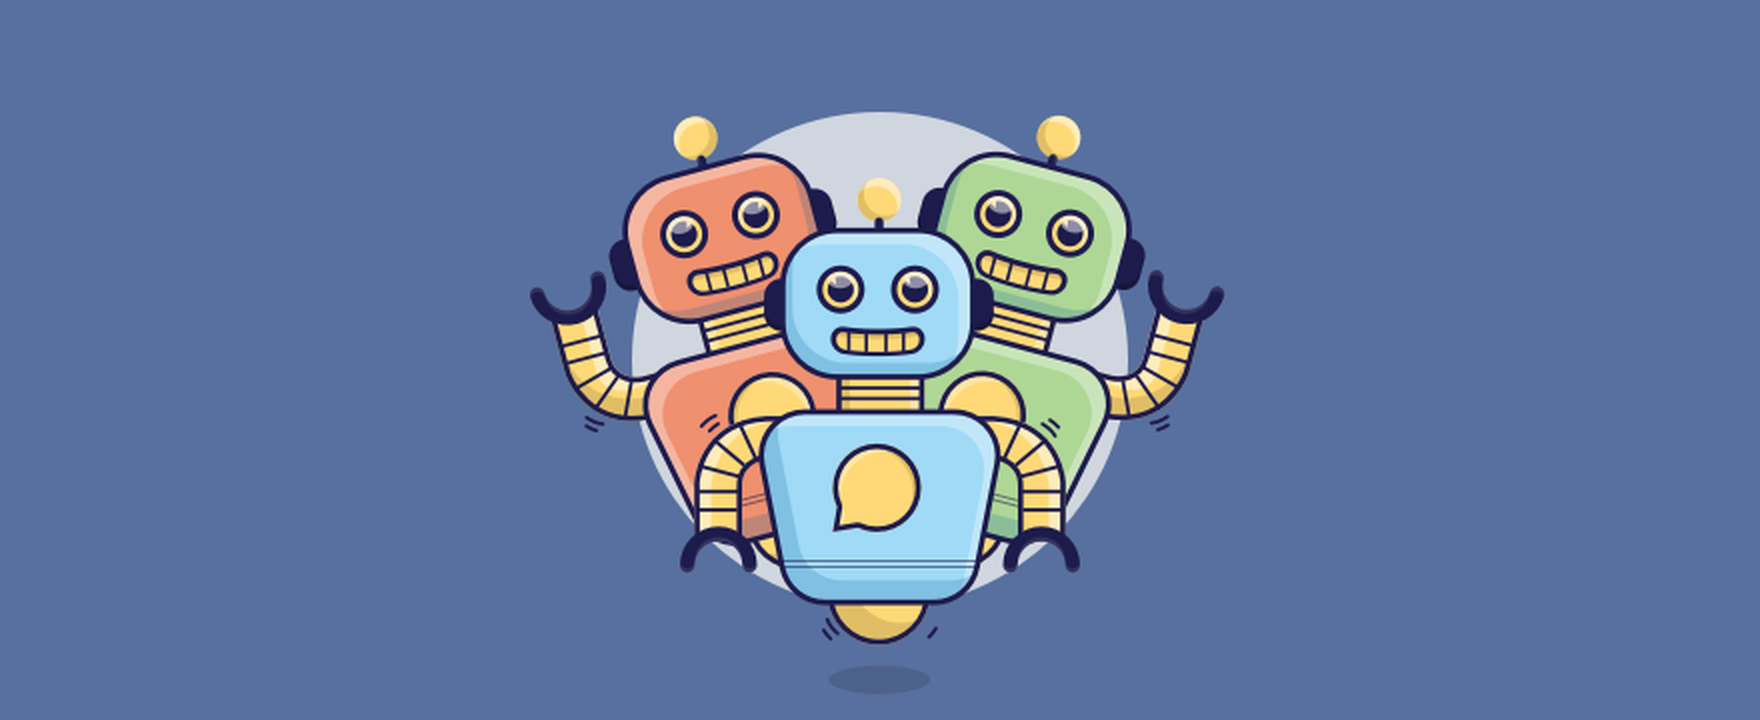 How to Use Chatbots in Support – Best Practices & Examples